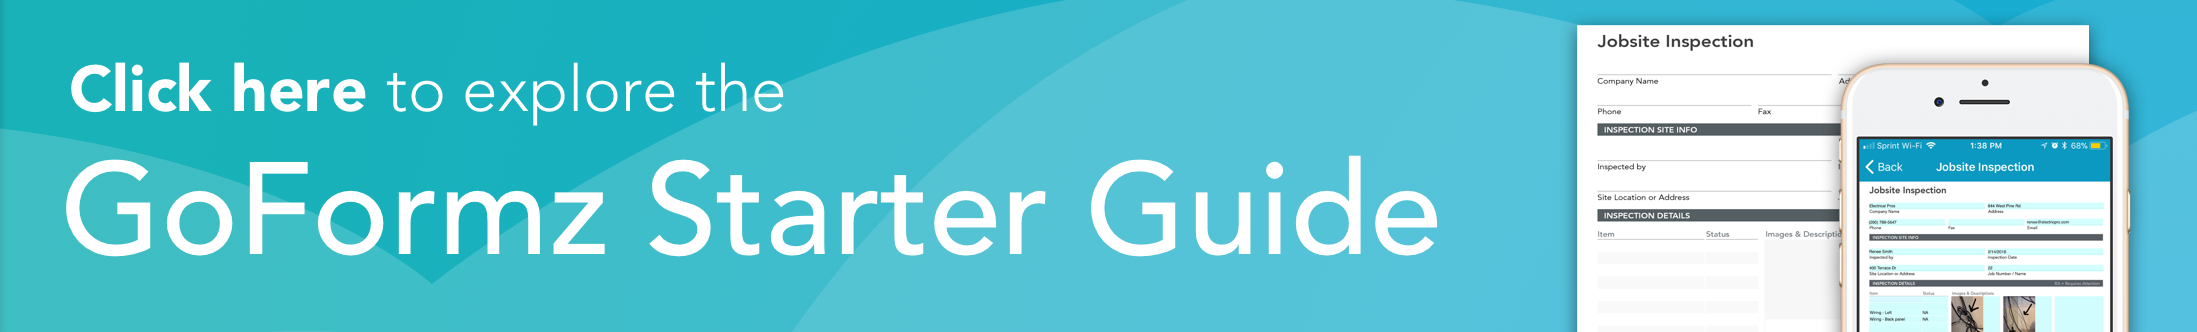 Click this banner to explore the GoFormz Starter Guide